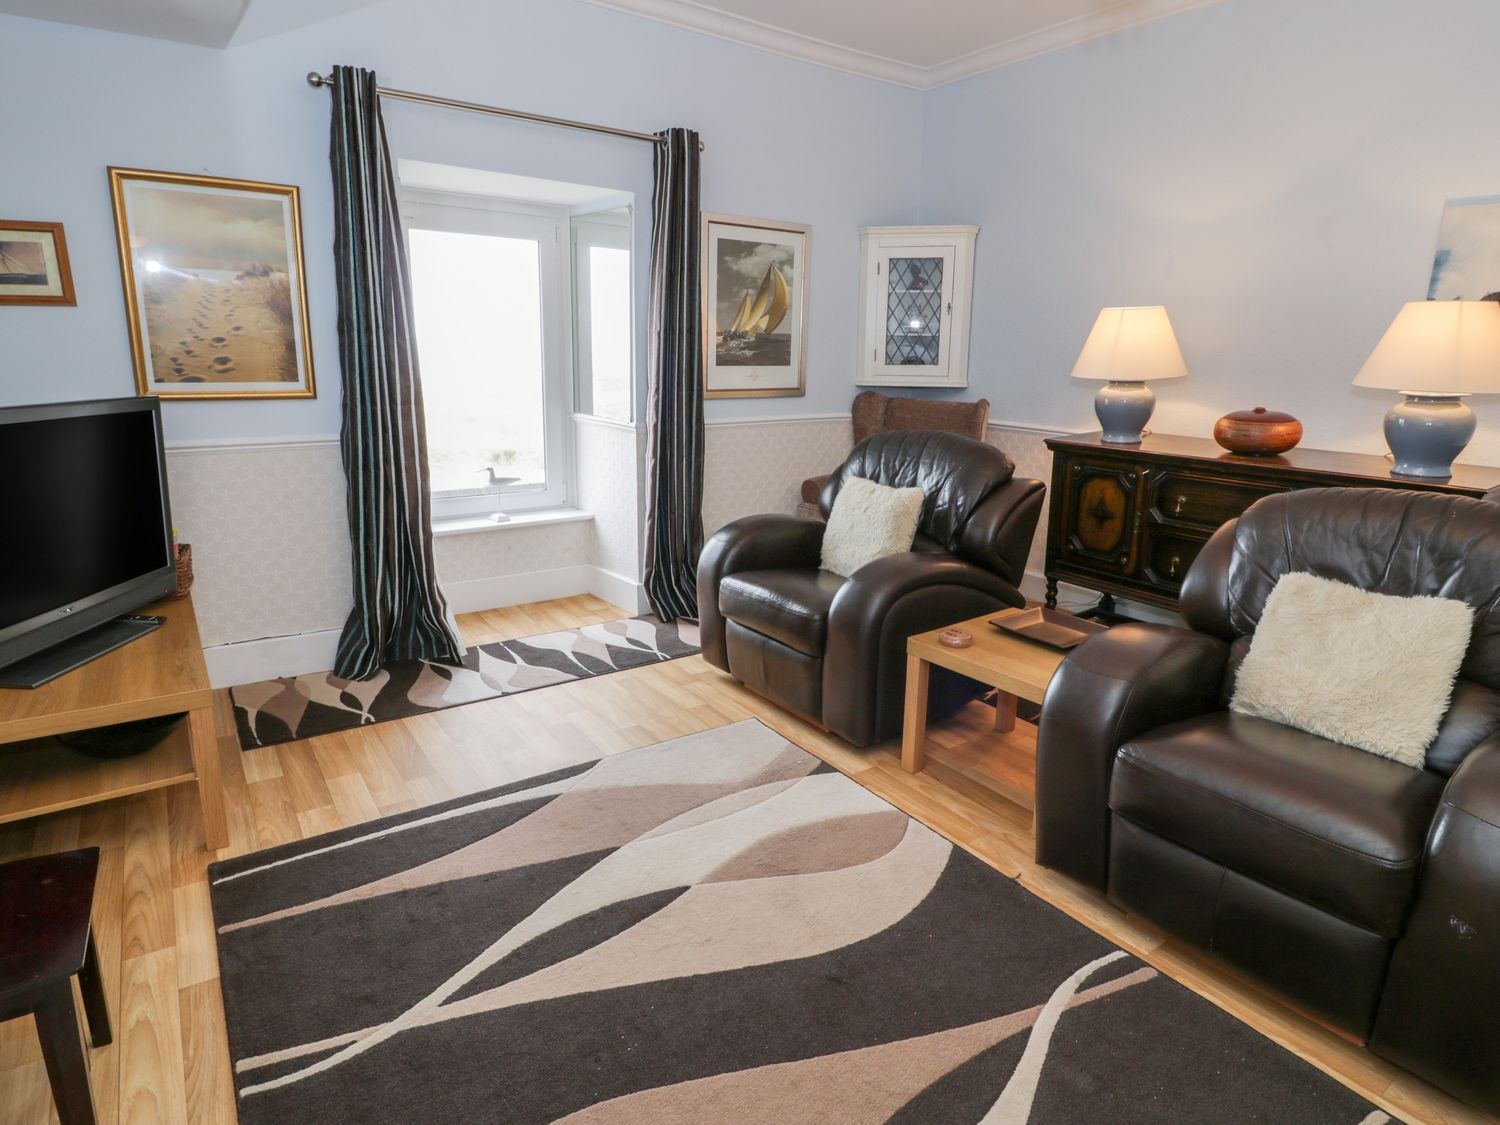 Abermaw Views in Barmouth - sleeps 5 people